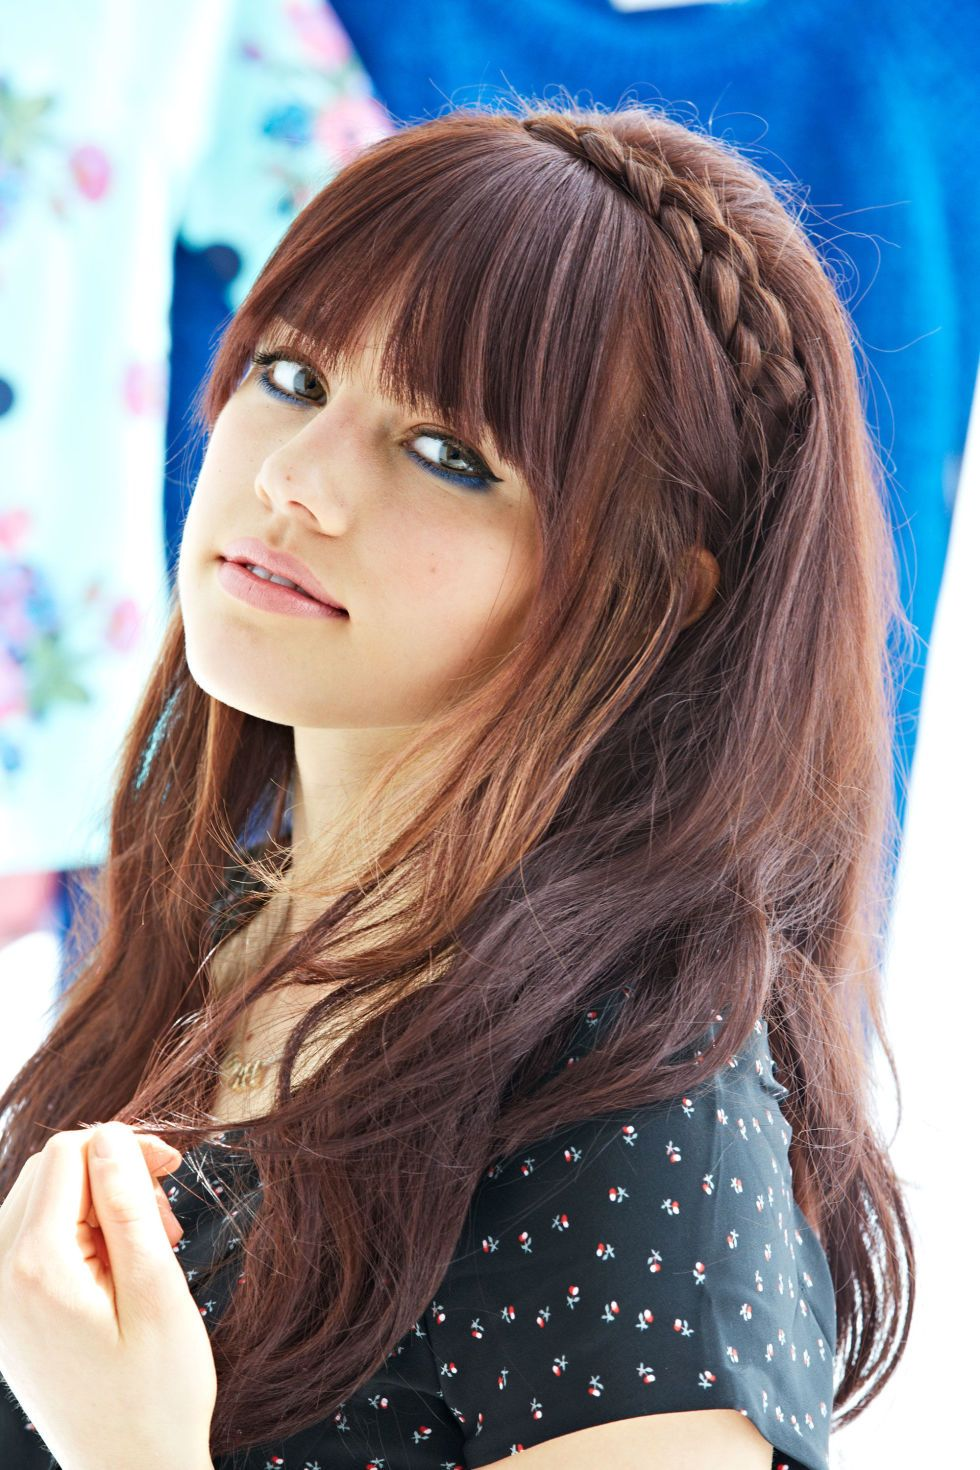 9 Cute Af Hairstyles Every With Bangs Should Know About